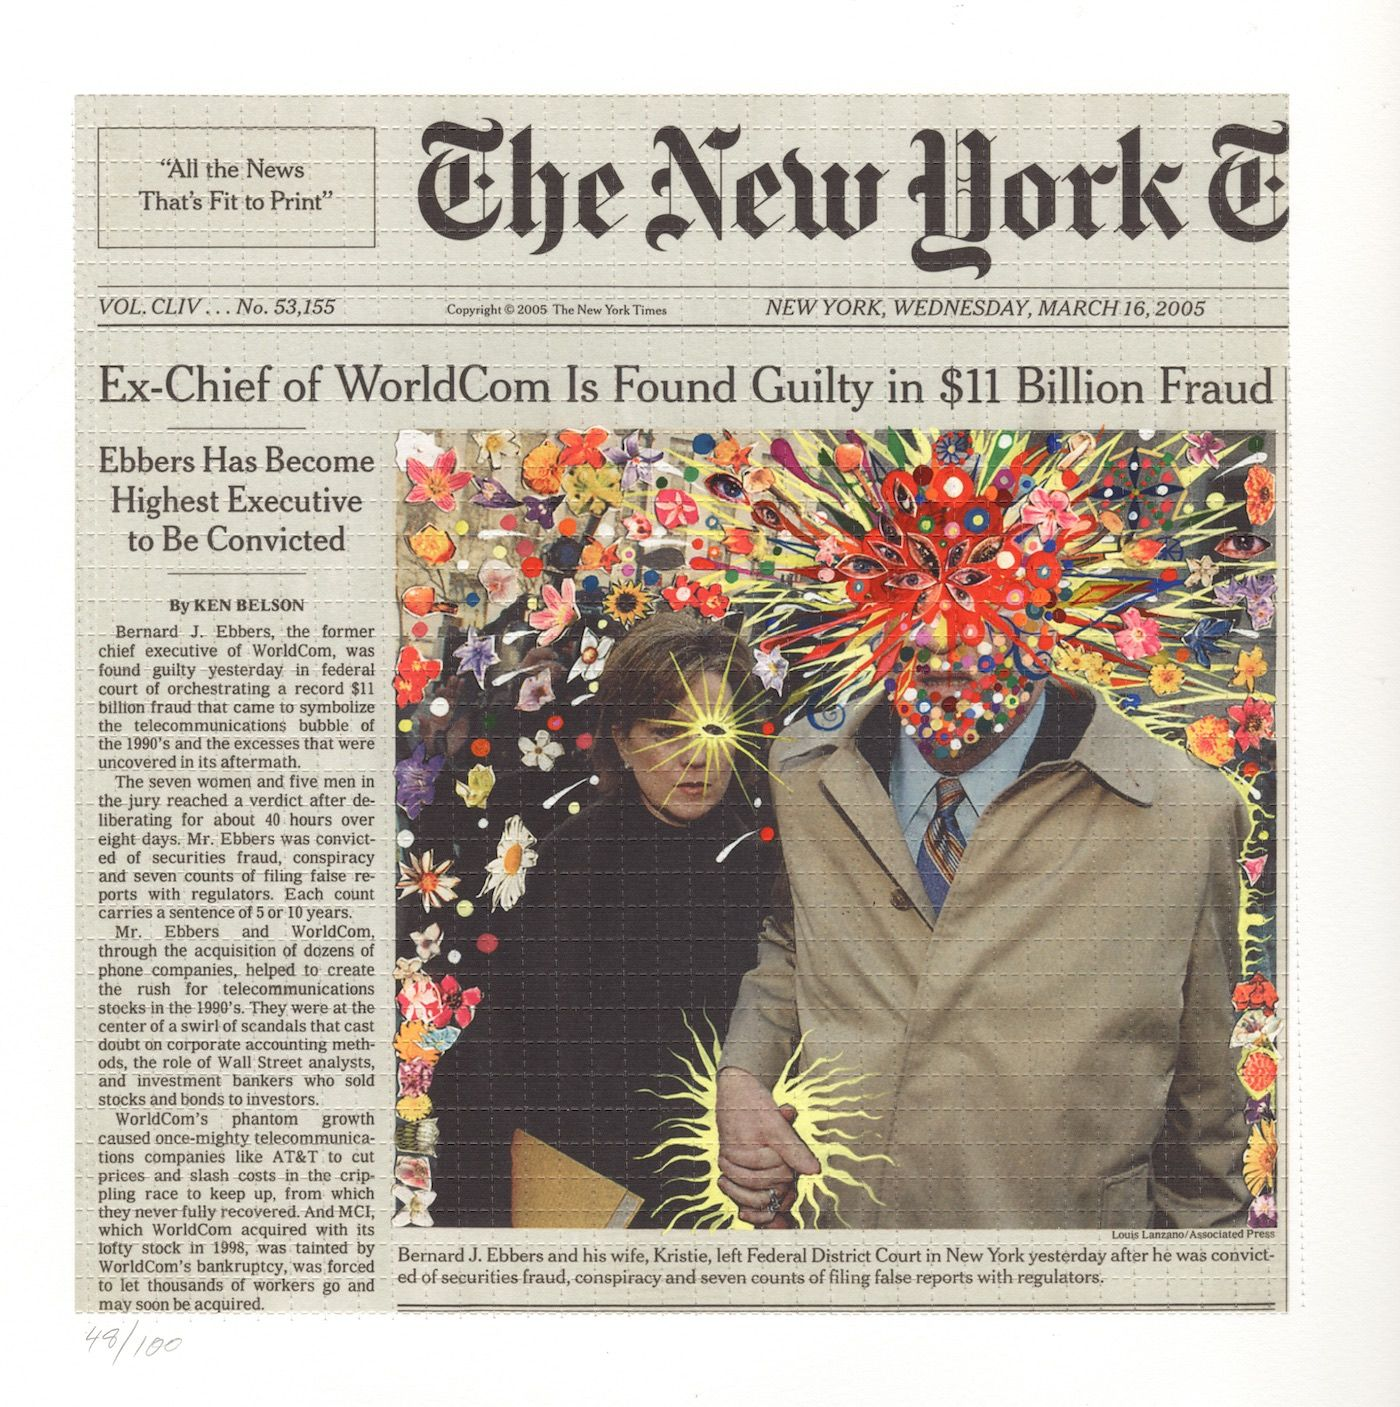 Beer with a painter fred tomaselli fred tomaselli fred